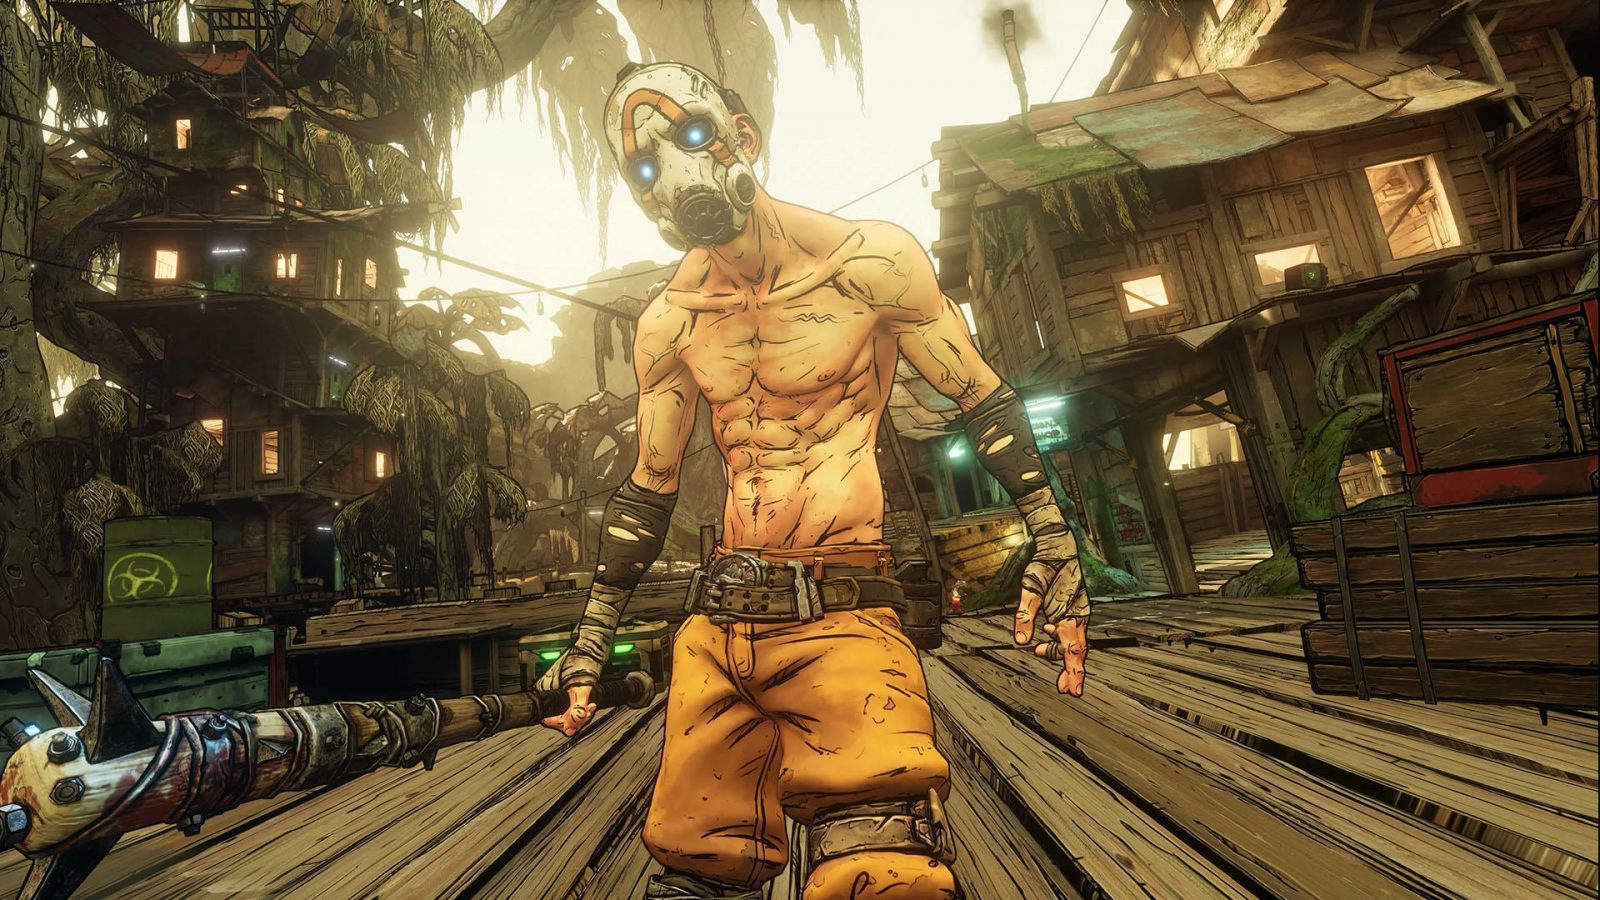 Borderlands 3 is Out For Stadia, But It Won't Be Up To Date With Other Platforms For a While